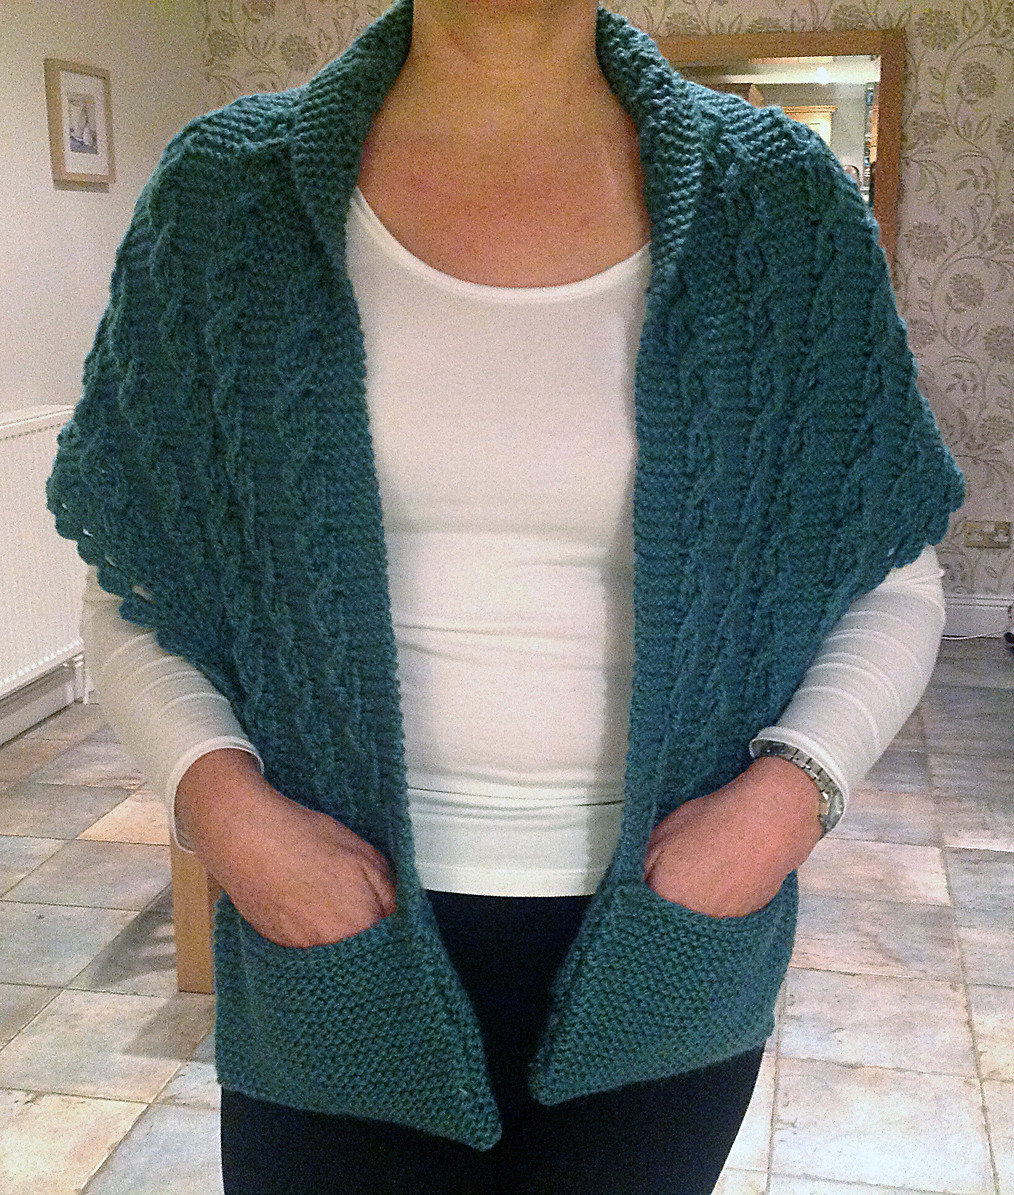 Awesome Pocket Wrap Knitting Patterns Knitted Wrap Pattern Of Adorable 40 Photos Knitted Wrap Pattern